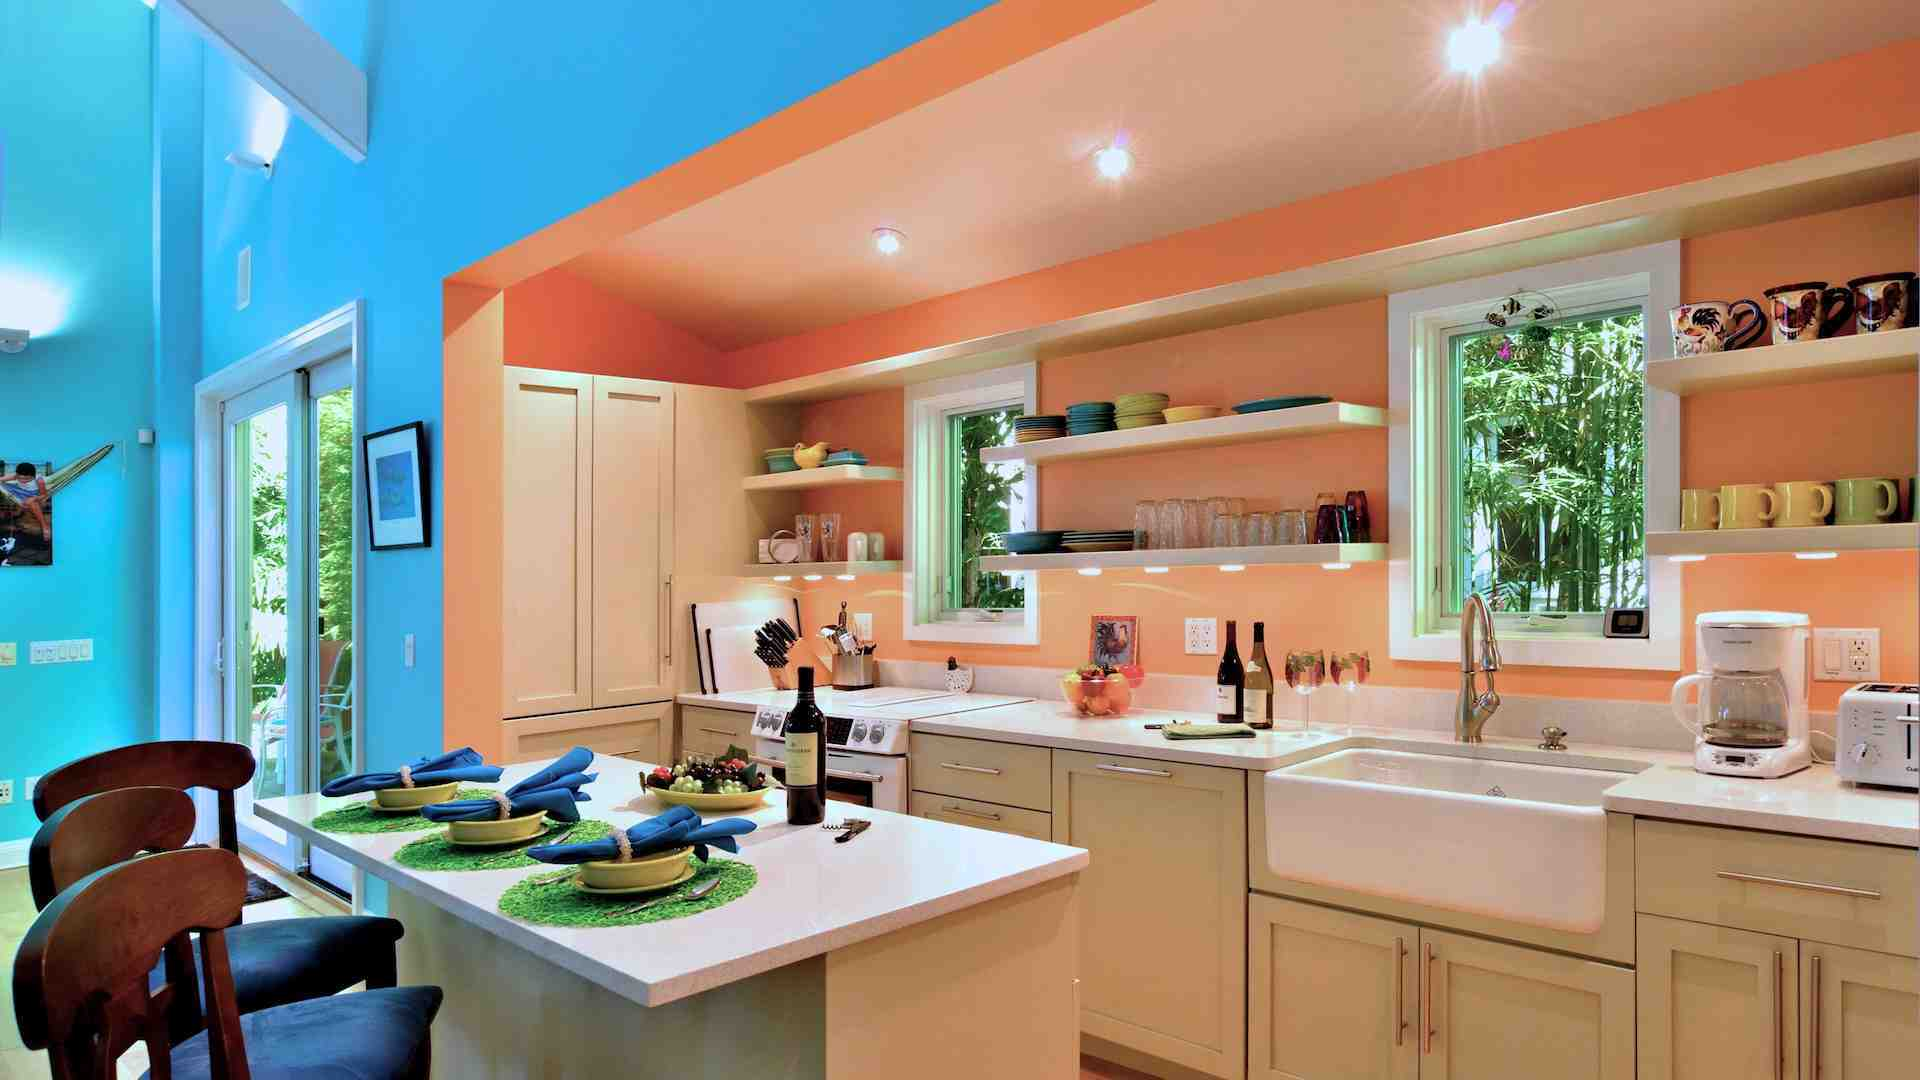 The custom kitchen is fully equipped with top of the line appliances...